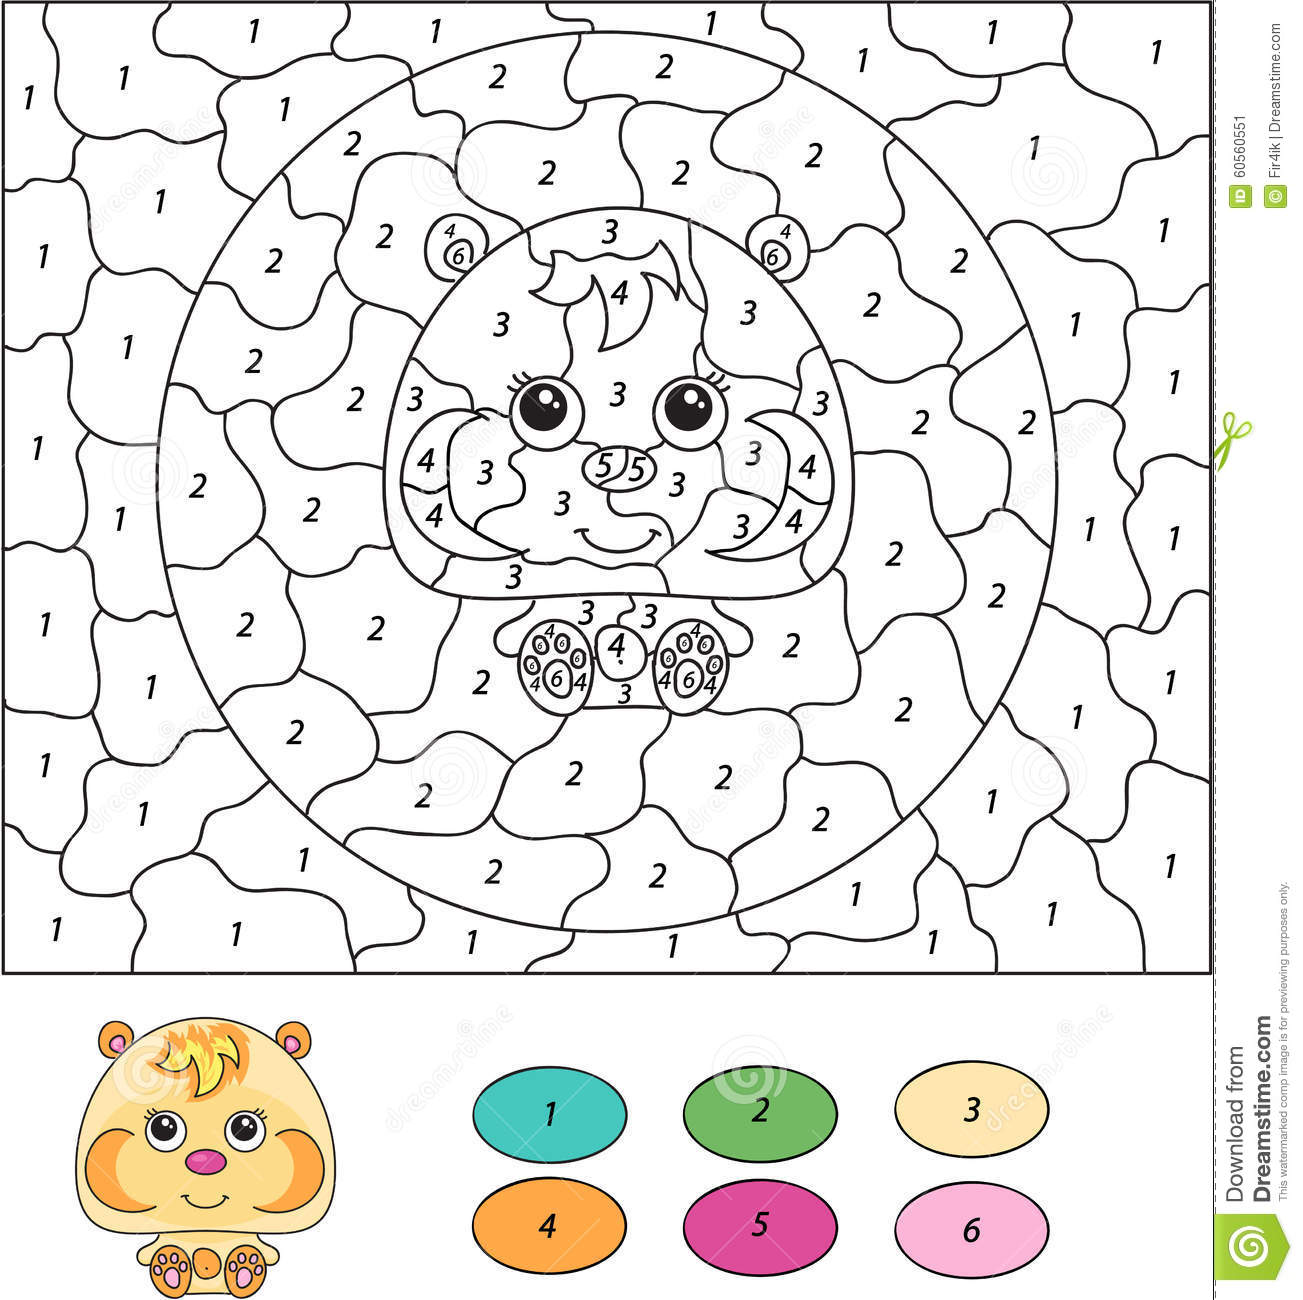 Uncategorized Color By Number Kids color by number educational game for kids cartoon hamster stock hamster